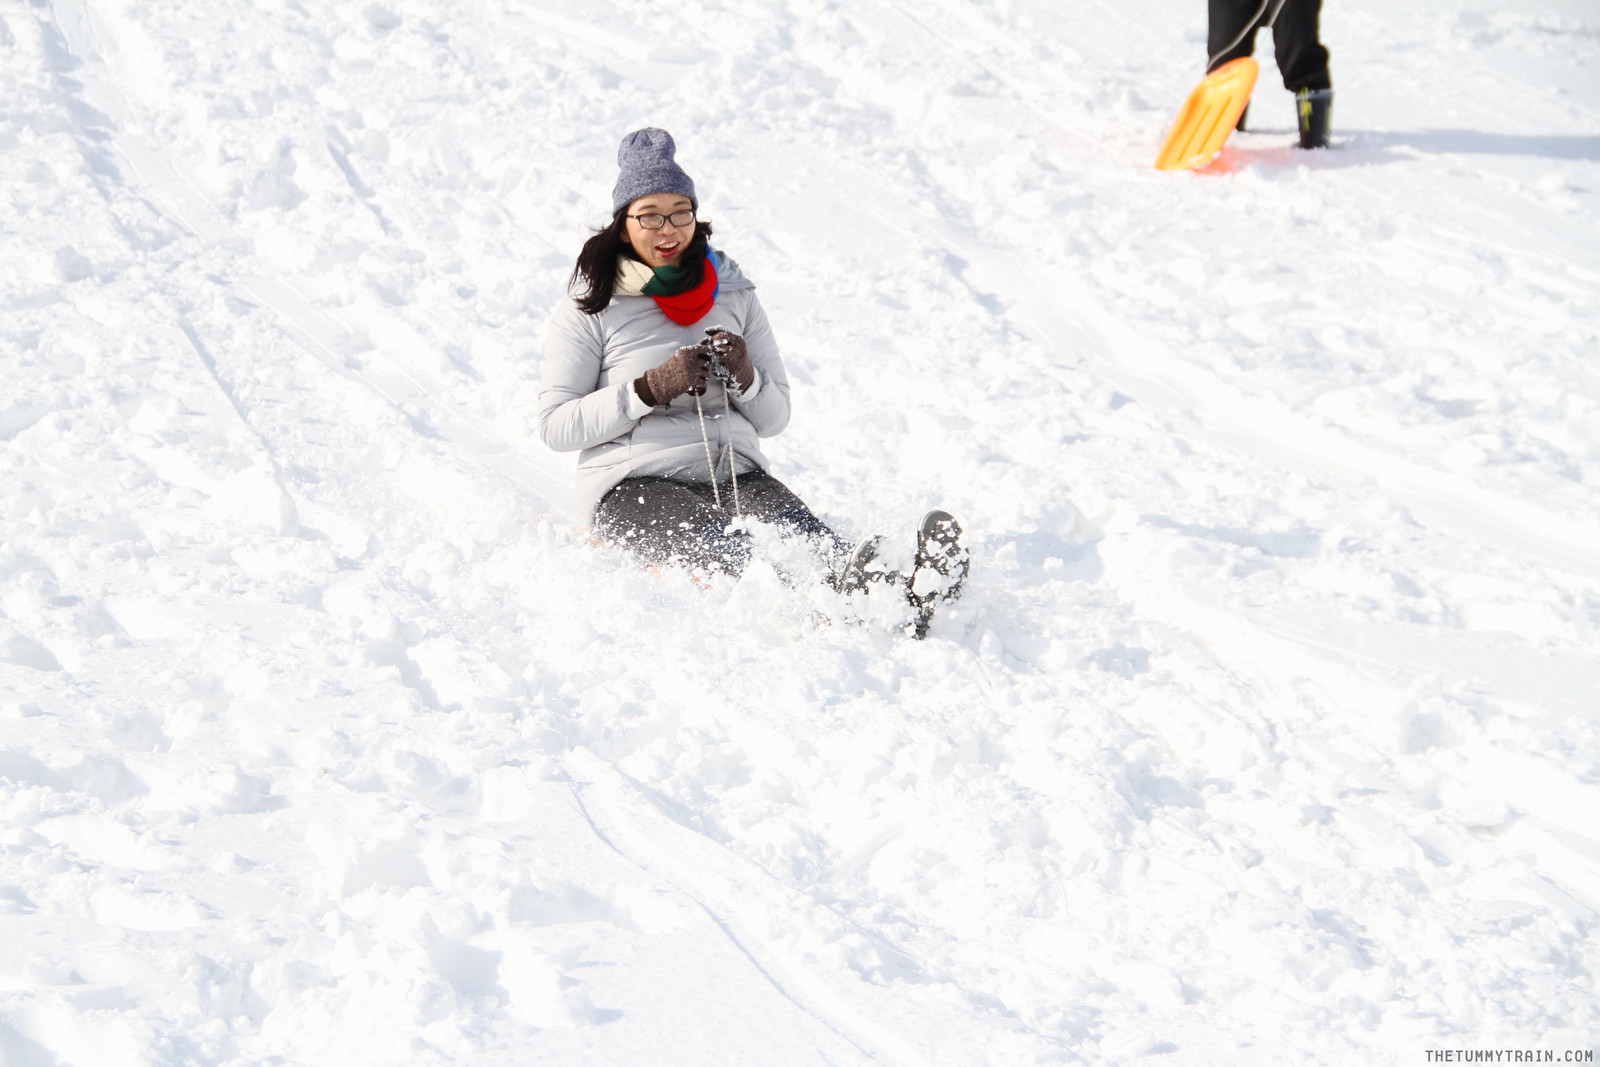 32916329695 d0d9ffc380 h - Sapporo Snow And Smile: 8 Unforgettable Winter Experiences in Sapporo City